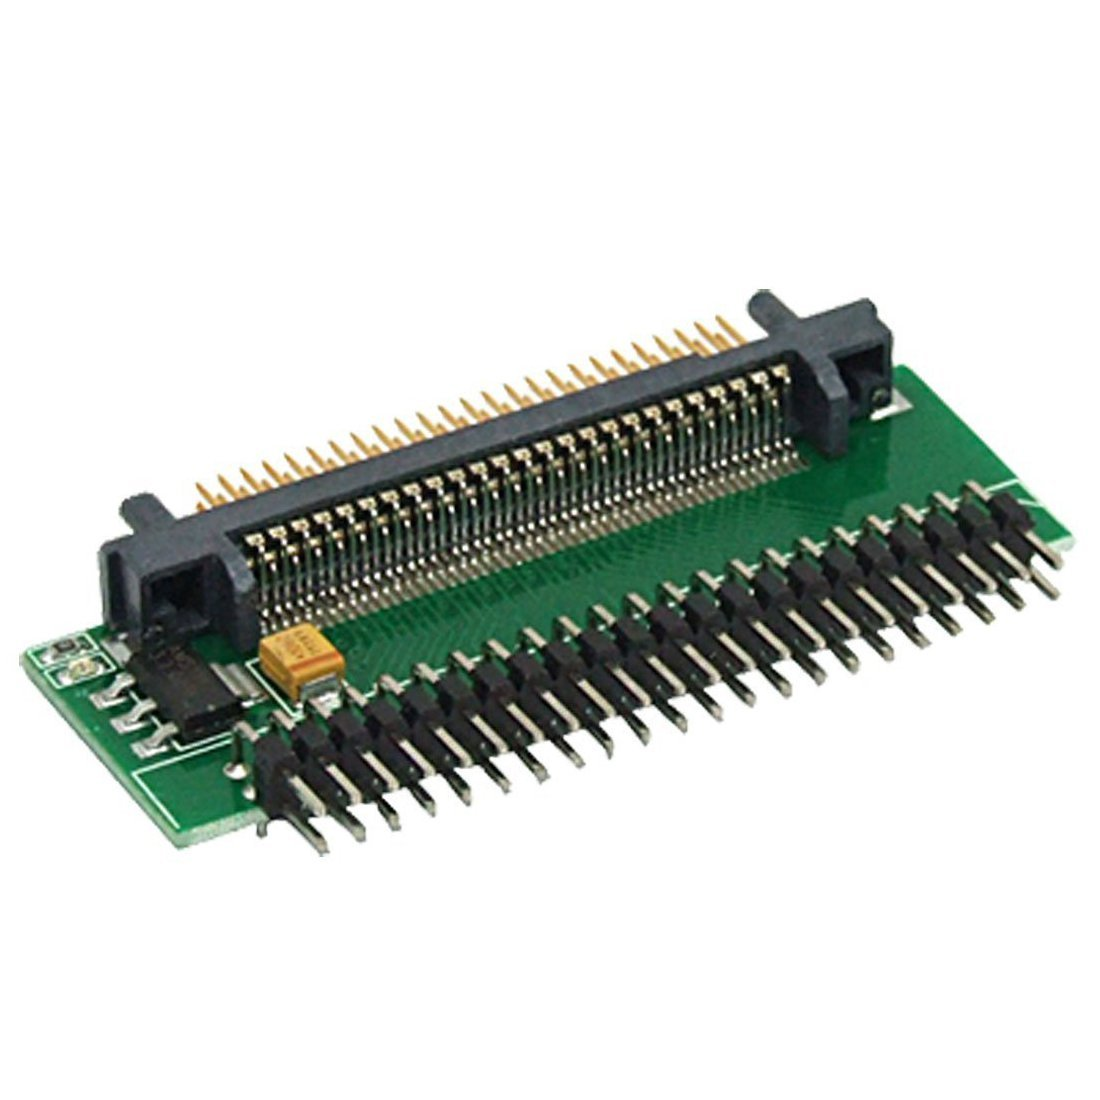 "1.8"" to 2.5"" IDE Converter - SODIAL(R) 1.8"" 50 Pin Micro IDE to 2.5"" 44 Pin IDE Adapter Converter Adaptor"